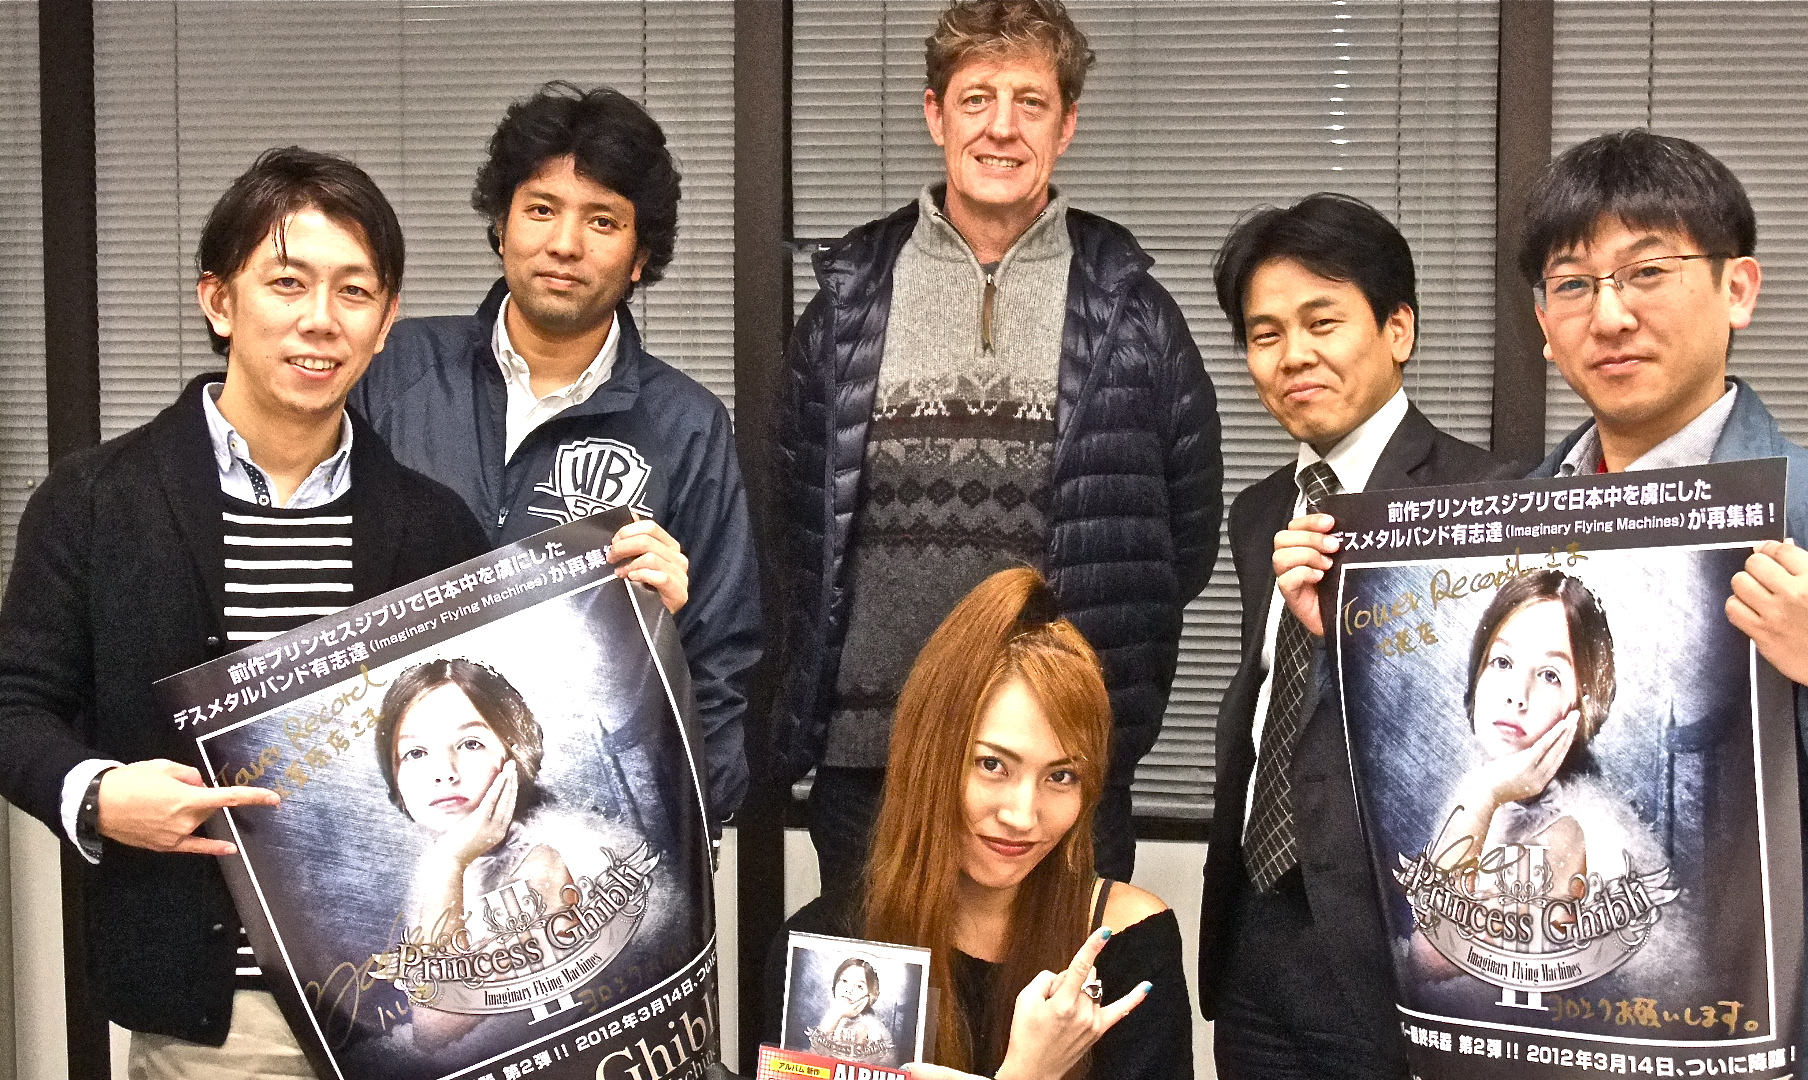 Promotion meetings for New releases by Imaginary Flying Machines! in TOKYO;)